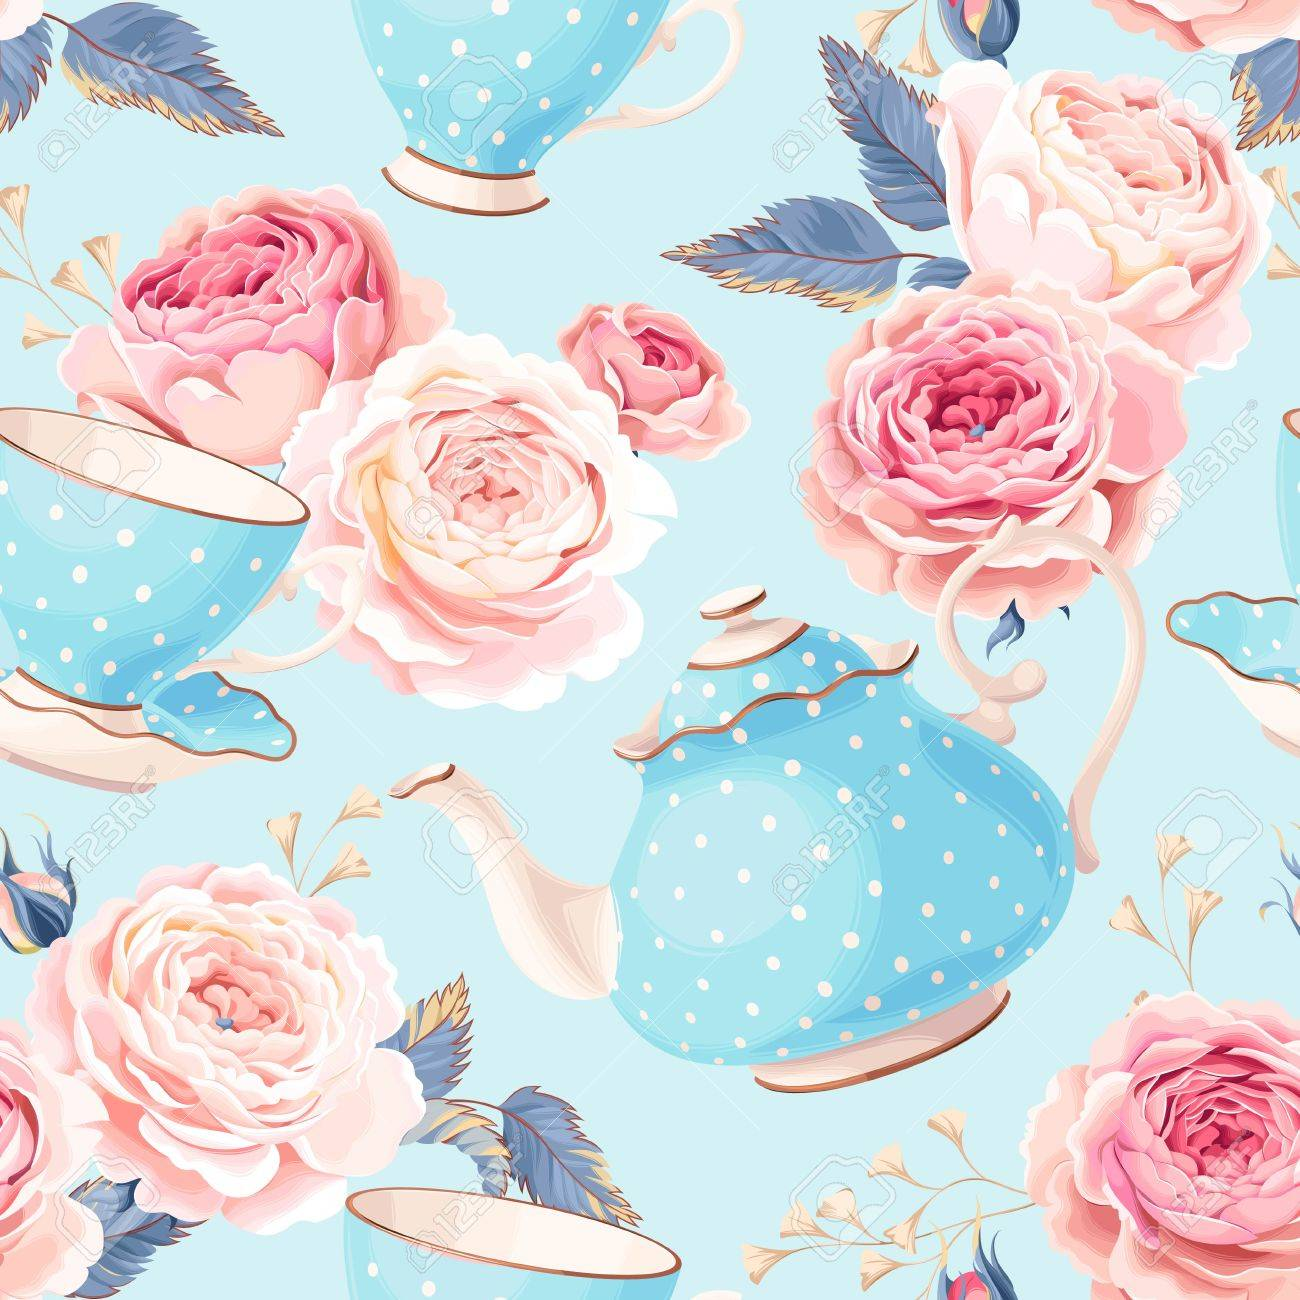 Vintage teapots, cups and flowers vector seamless background - 63794935